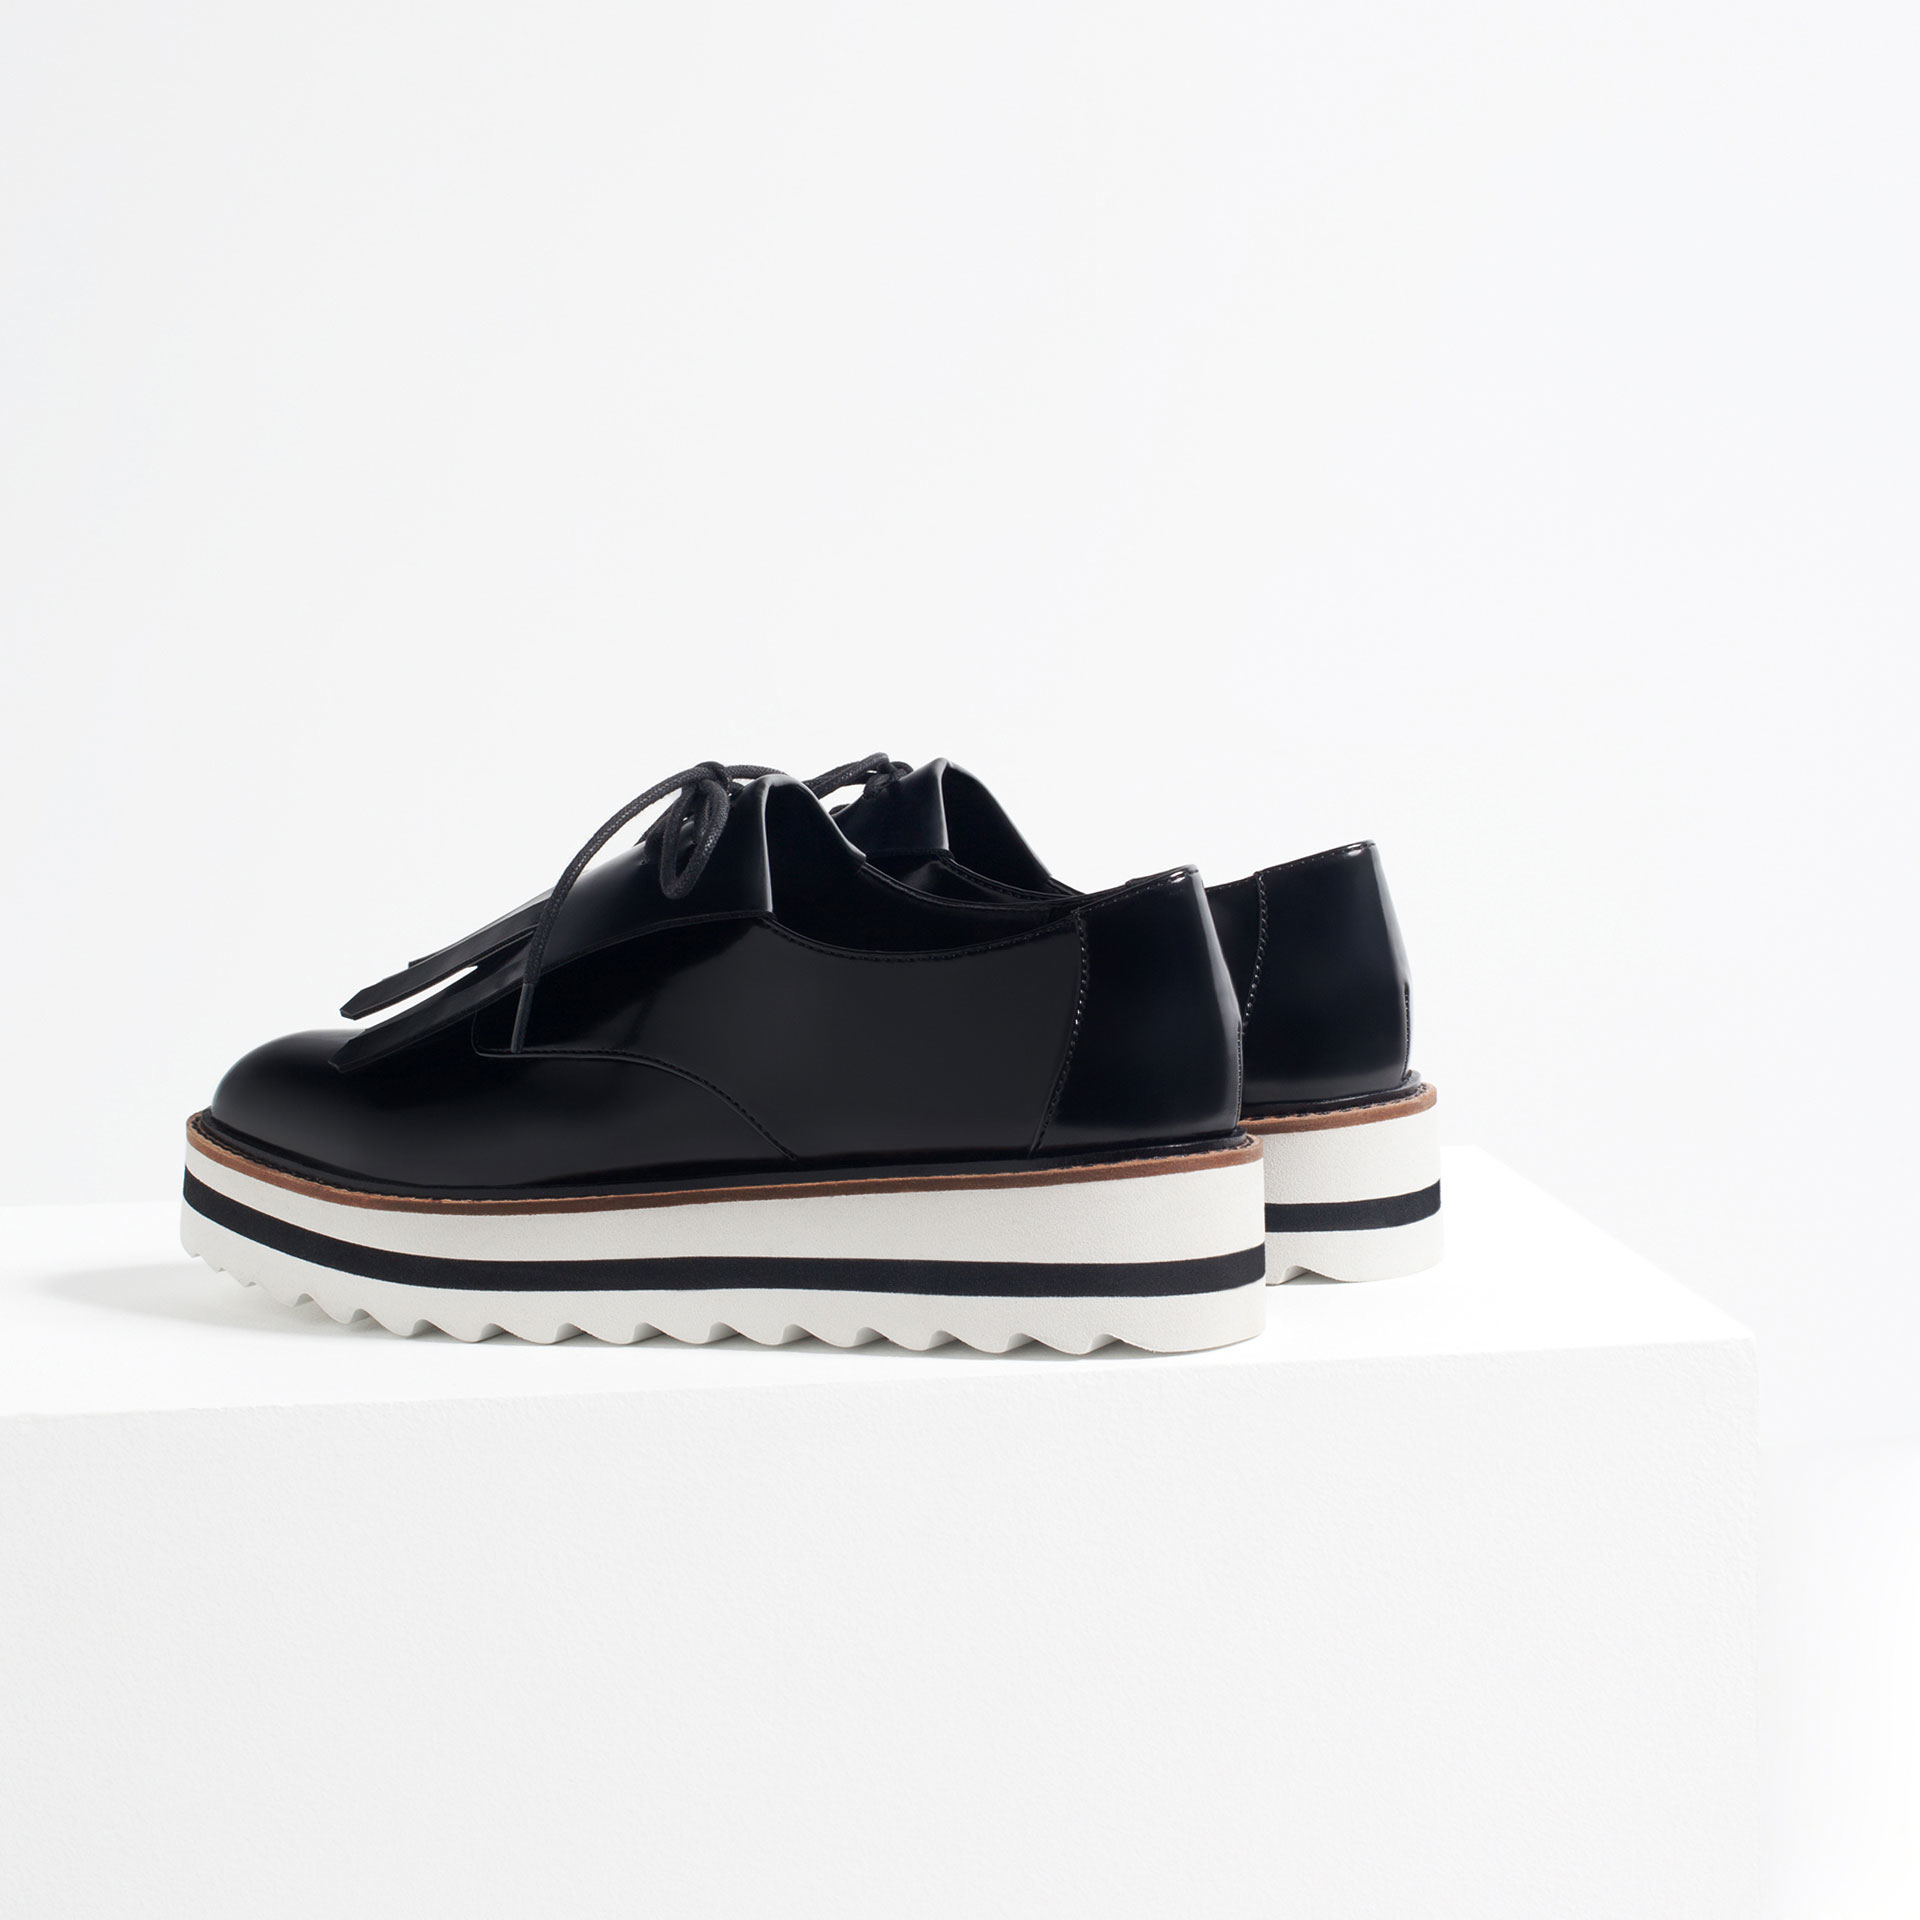 Awesome Zara Flat Shoes For Women  Shoes  Pinterest